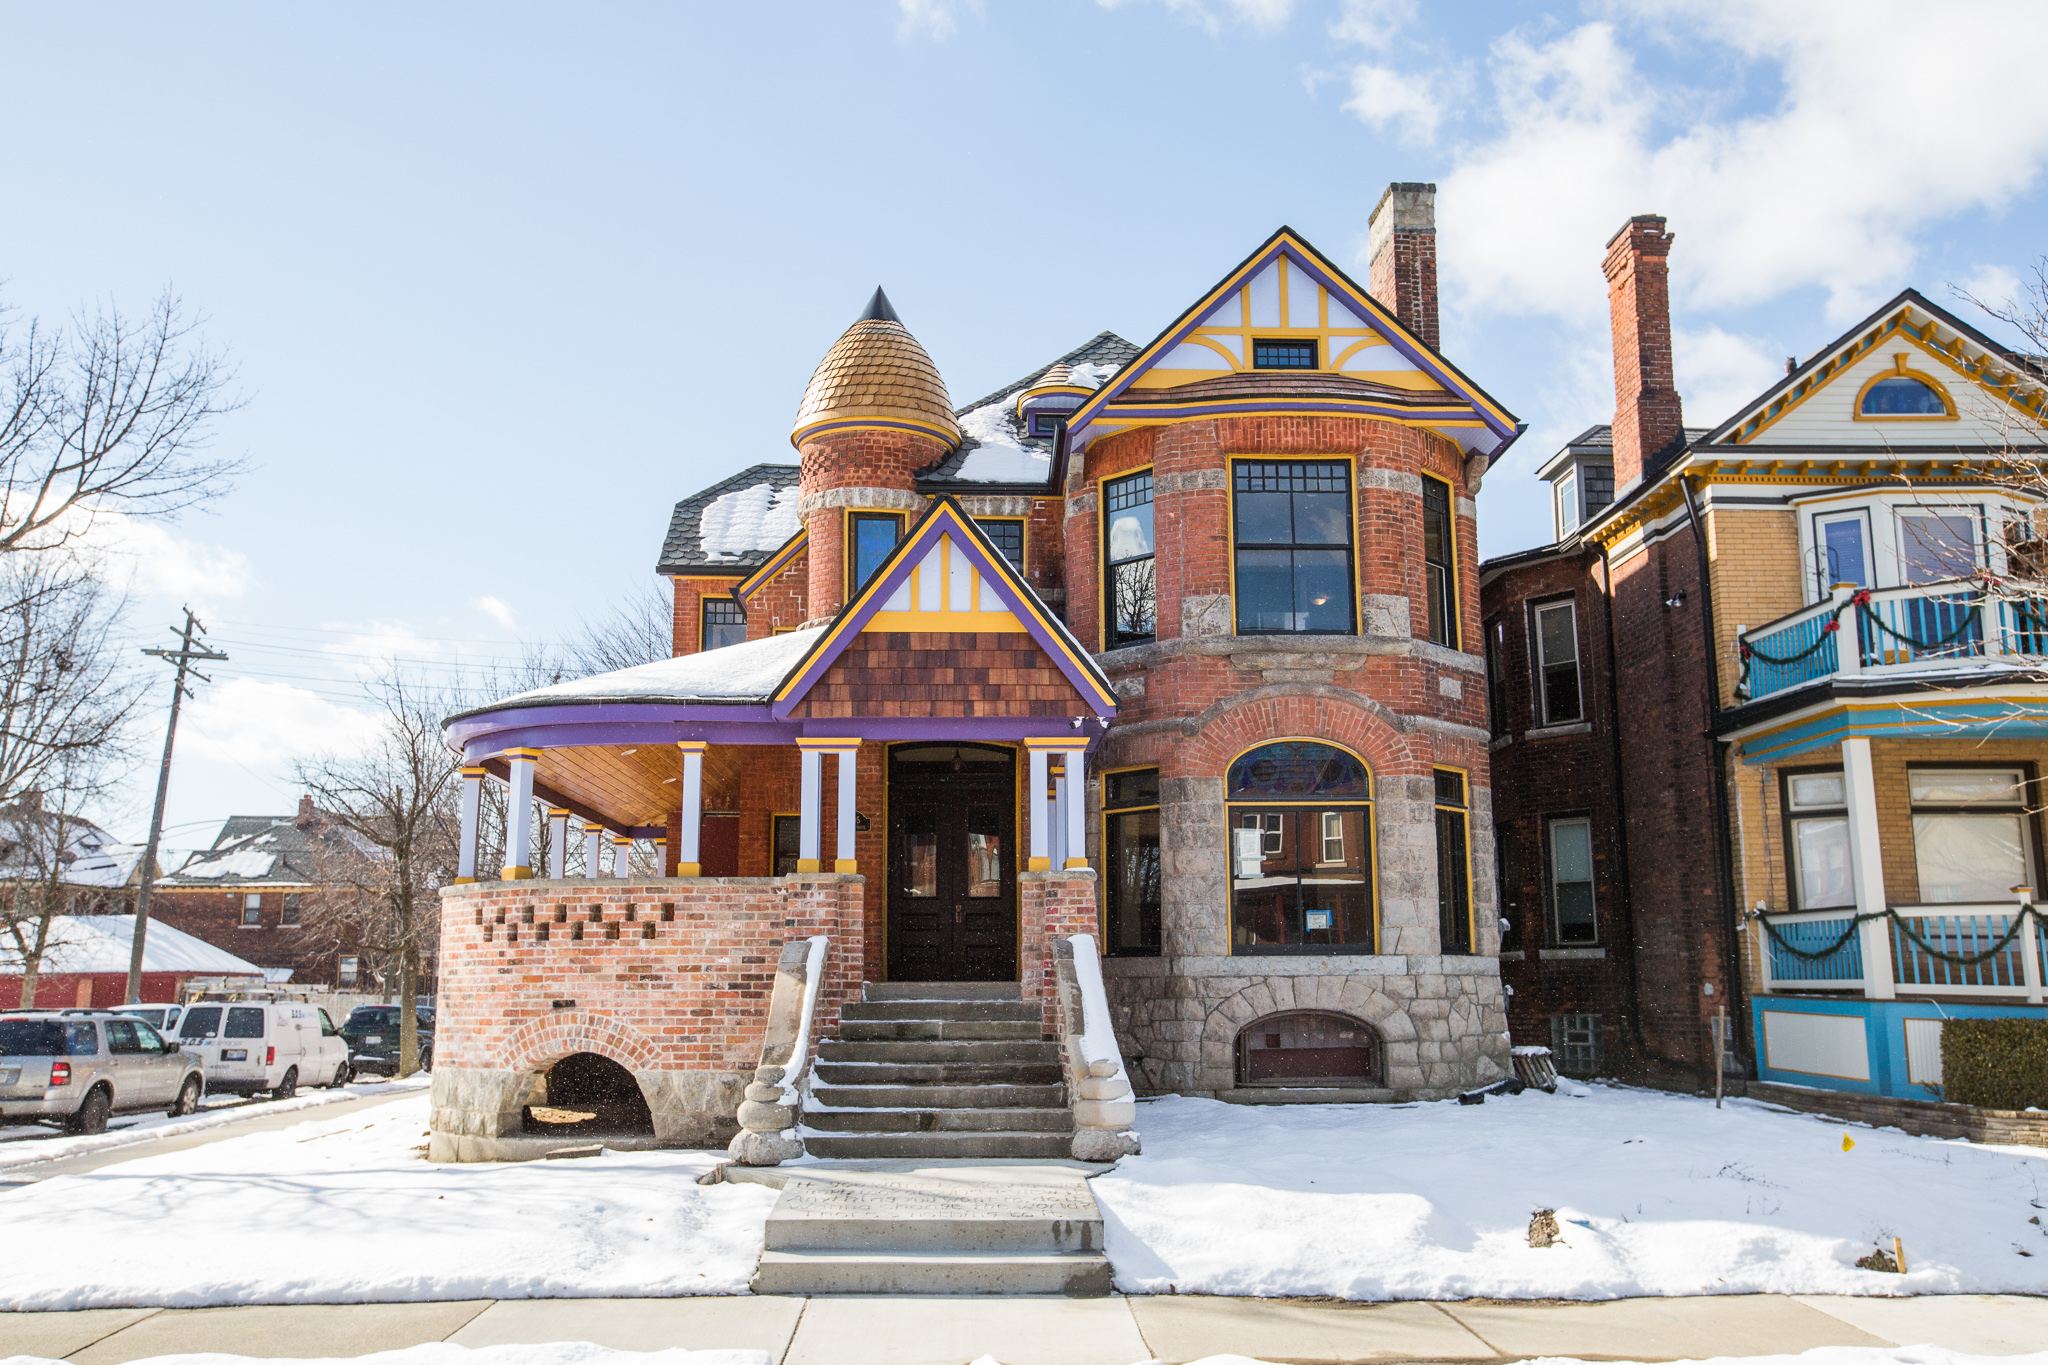 detroit renovations curbed detroit 50 years vacant the j d baer house is finally ready for new tenants